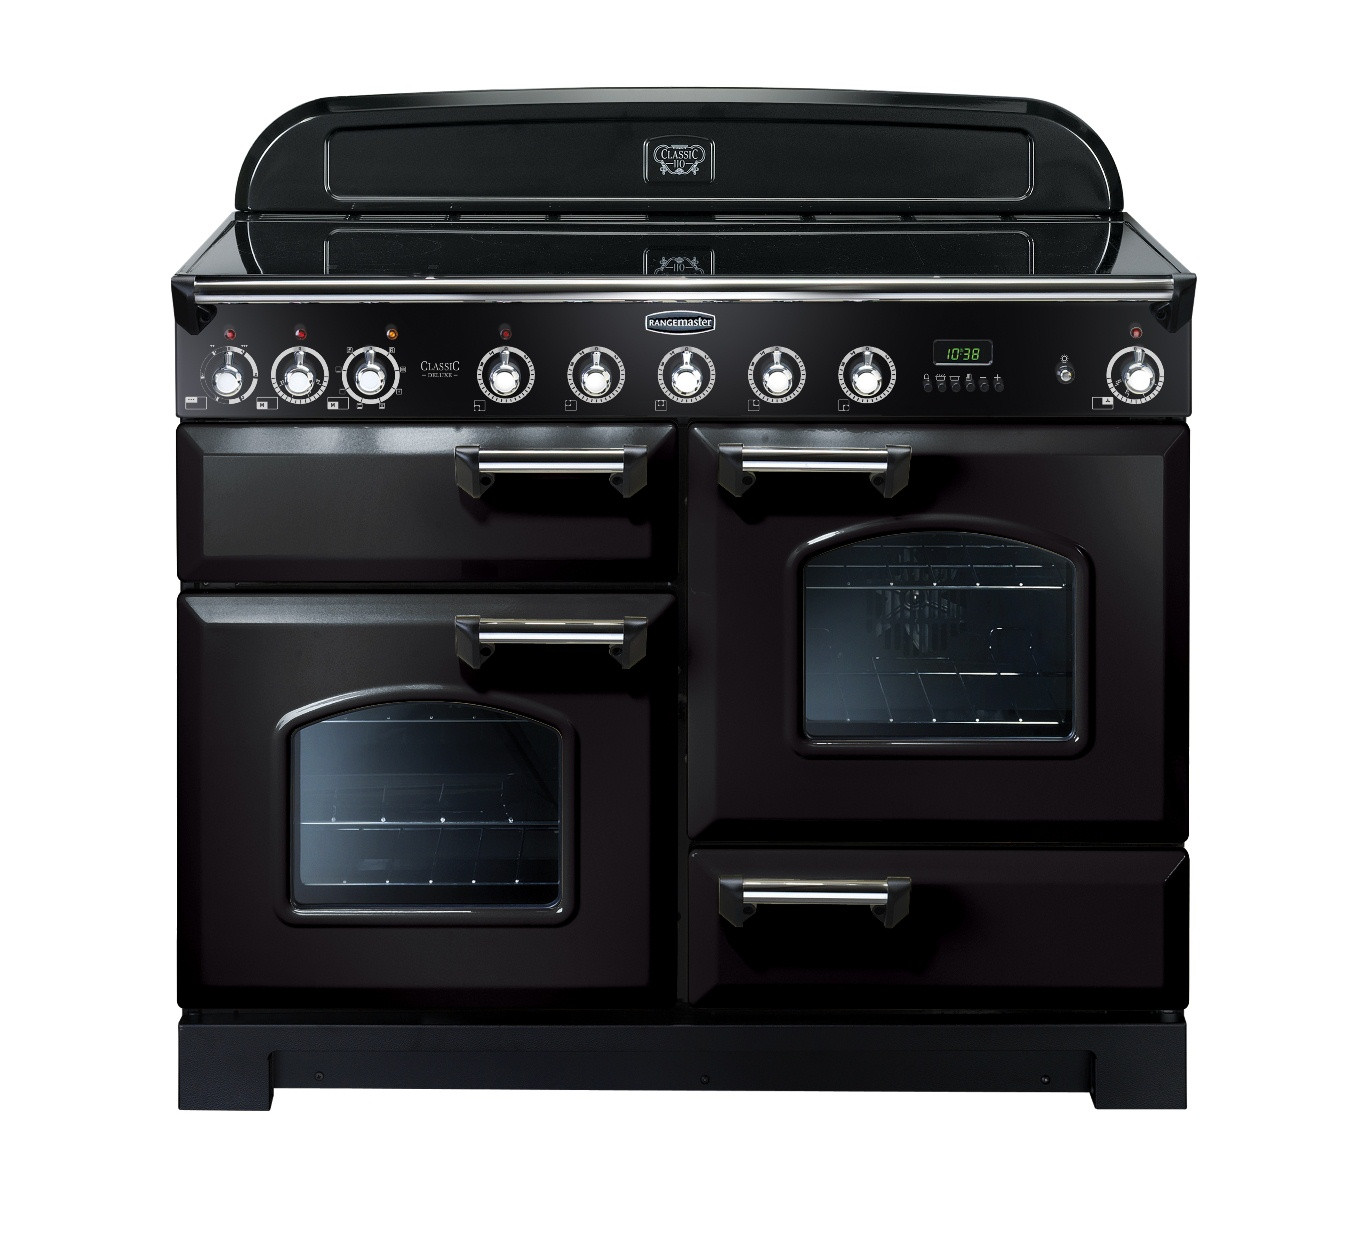 Rangemaster Classic Deluxe 110 Induction Range Cooker Black/Chrome Trim CDL110EIBL/C 90380